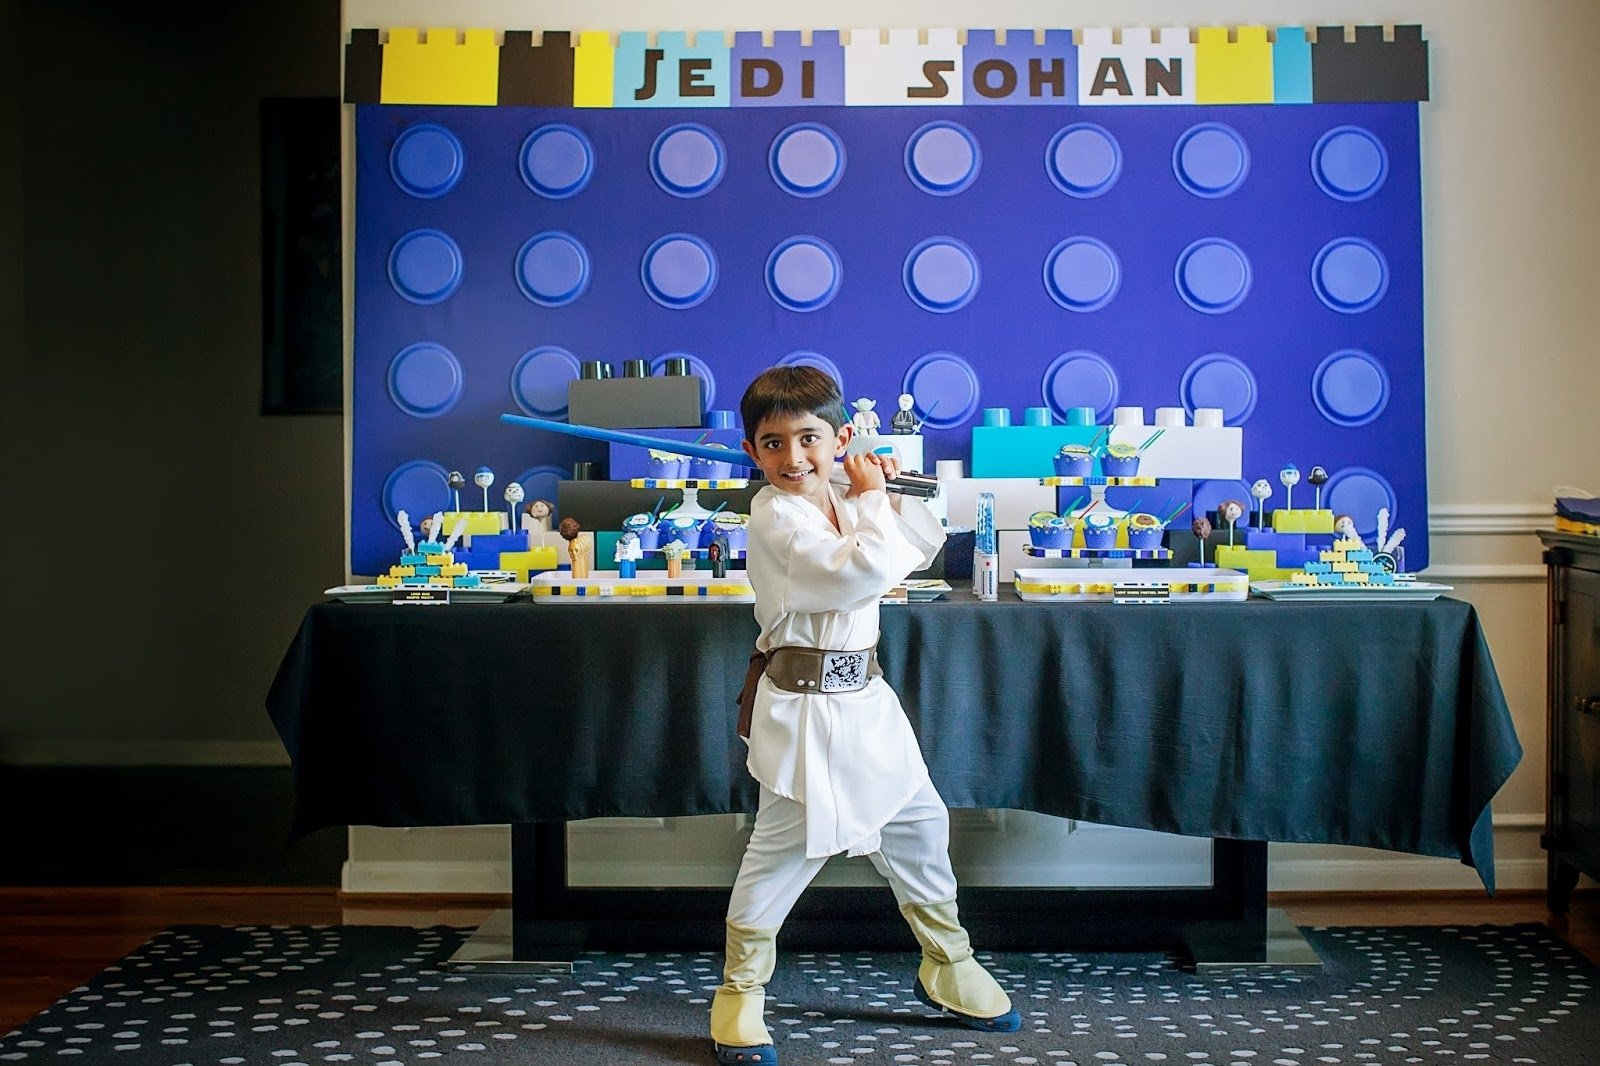 10 Fantastic Lego Star Wars Birthday Party Ideas the party wall legos and lightsabers a lego star wars inspired 2021